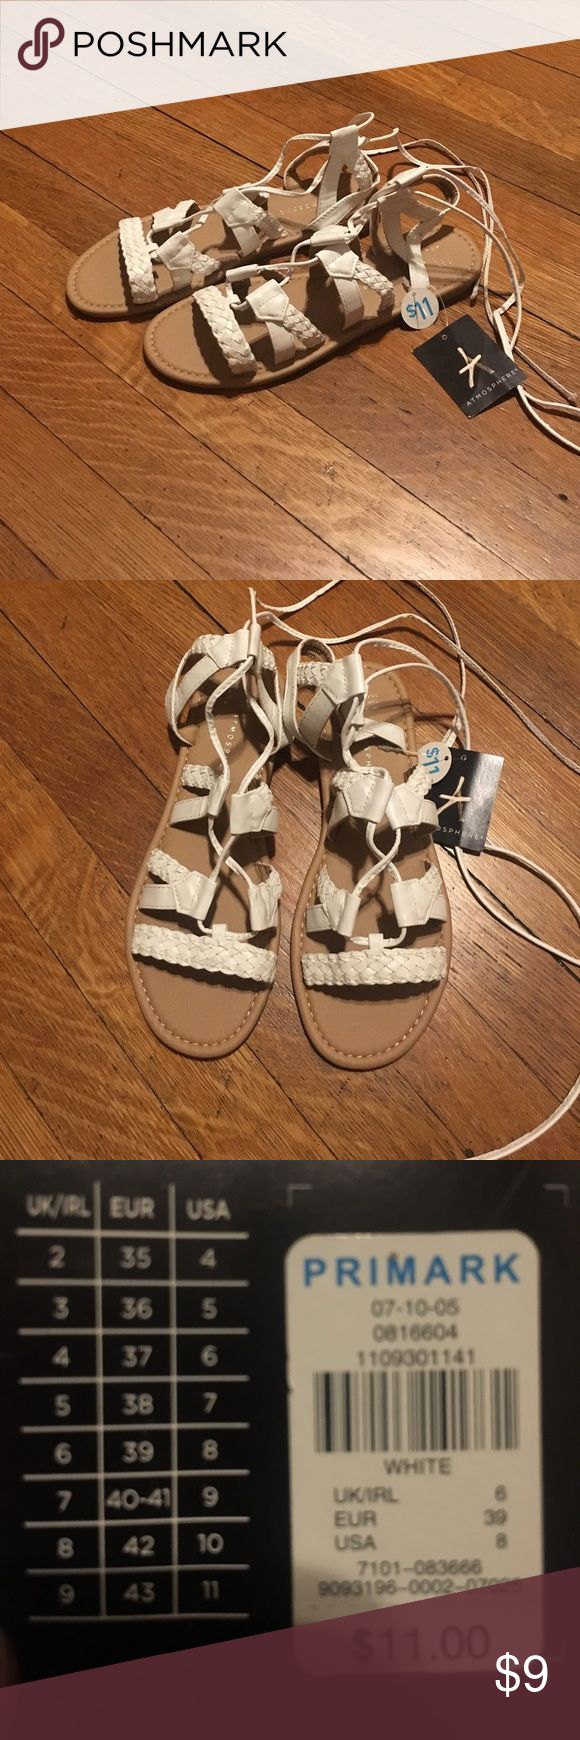 gladiator sandals! atmosphere white gladiator sandals NEW. from primark in a size 8. Atmosphere Shoes Sandals